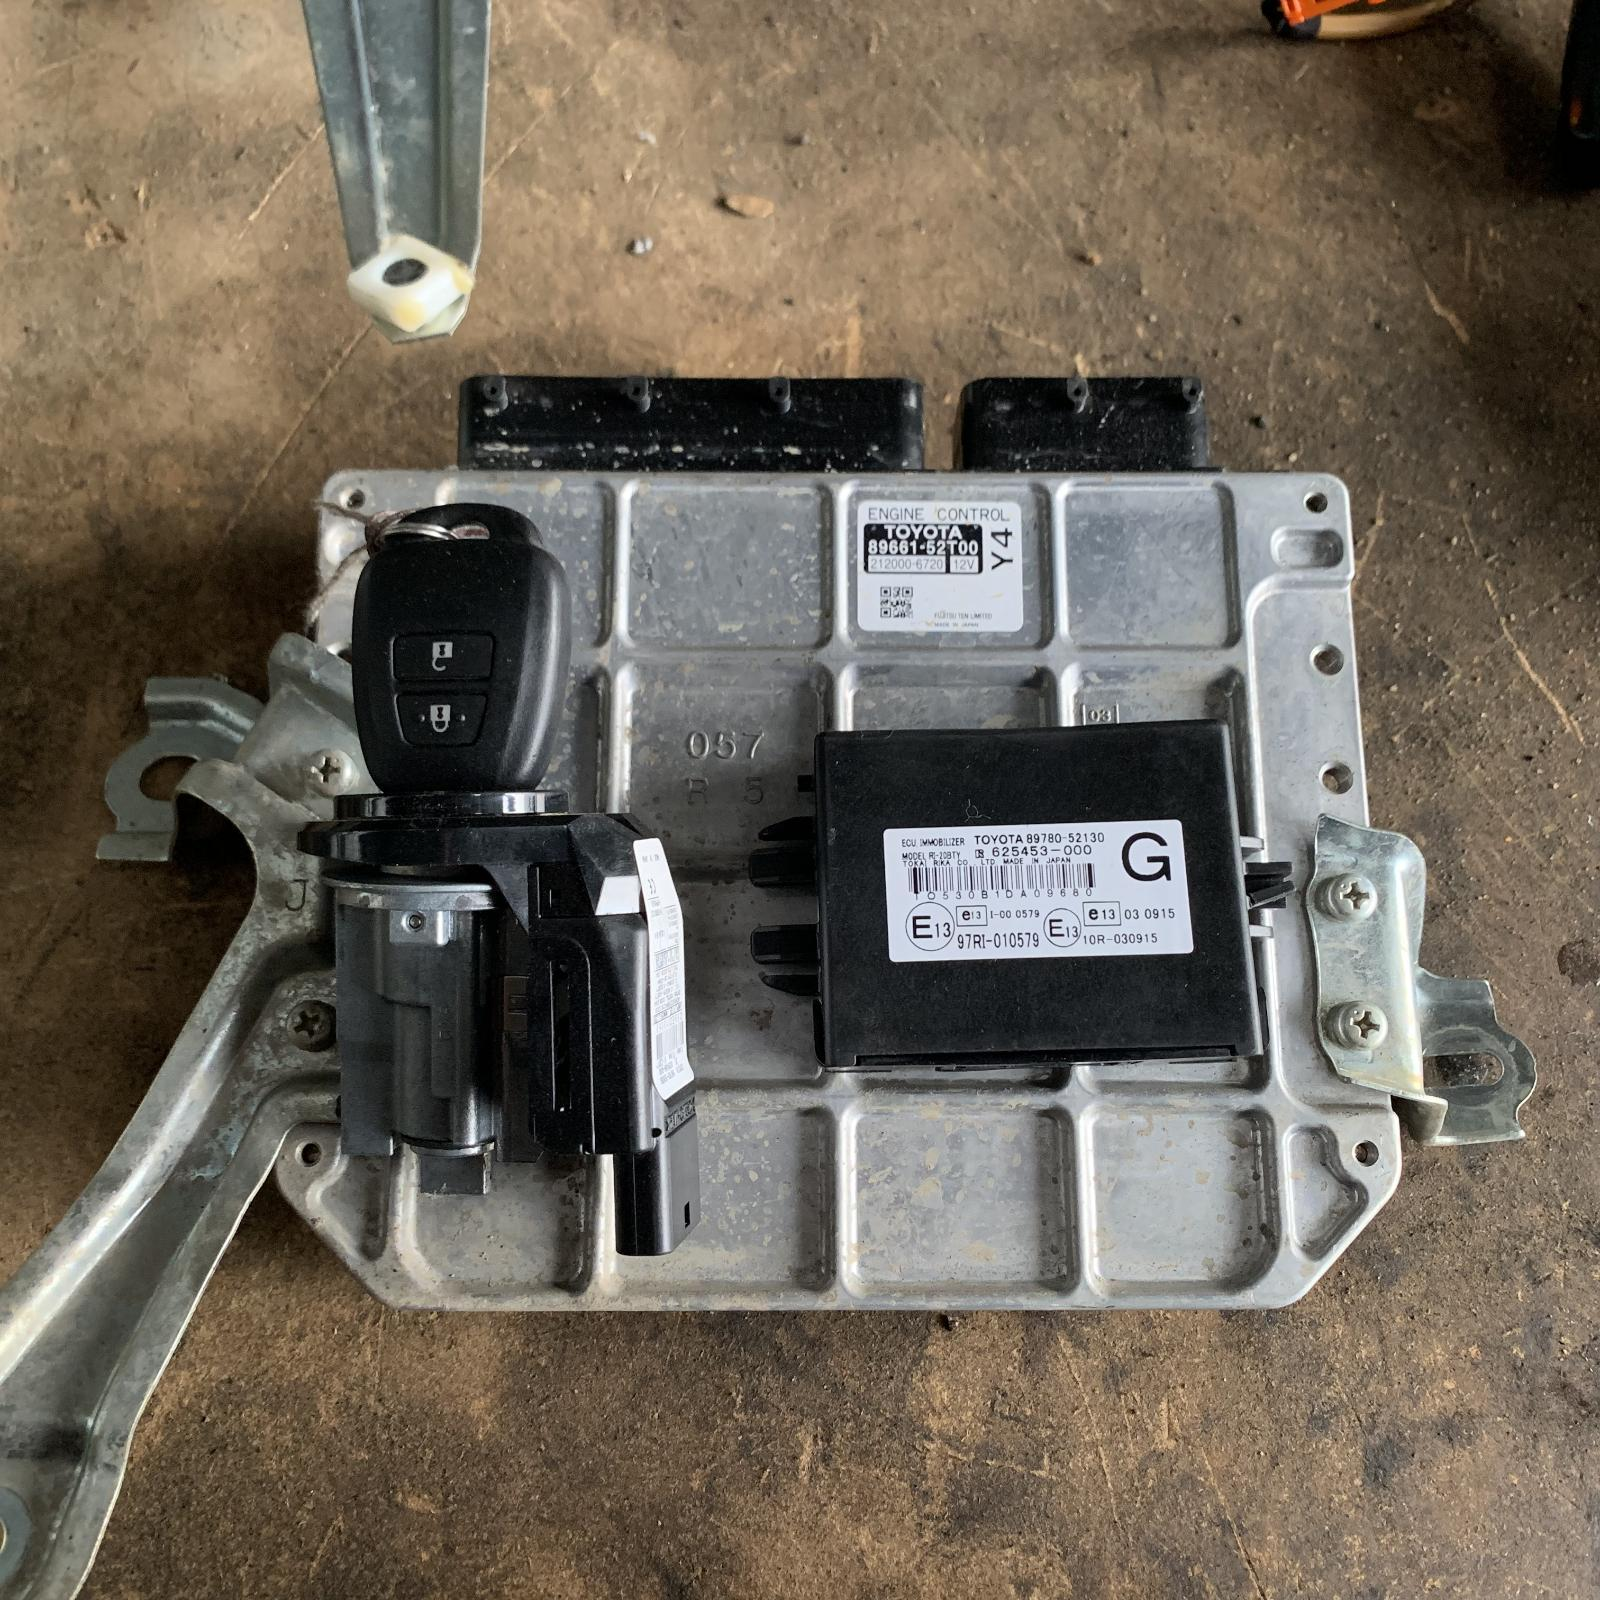 TOYOTA YARIS, Ecu, ENGINE ECU, 1.3, 2NZ, AUTO, SEC SET (ECU/IMM/READER/KEY), NCP13#, 11/11-